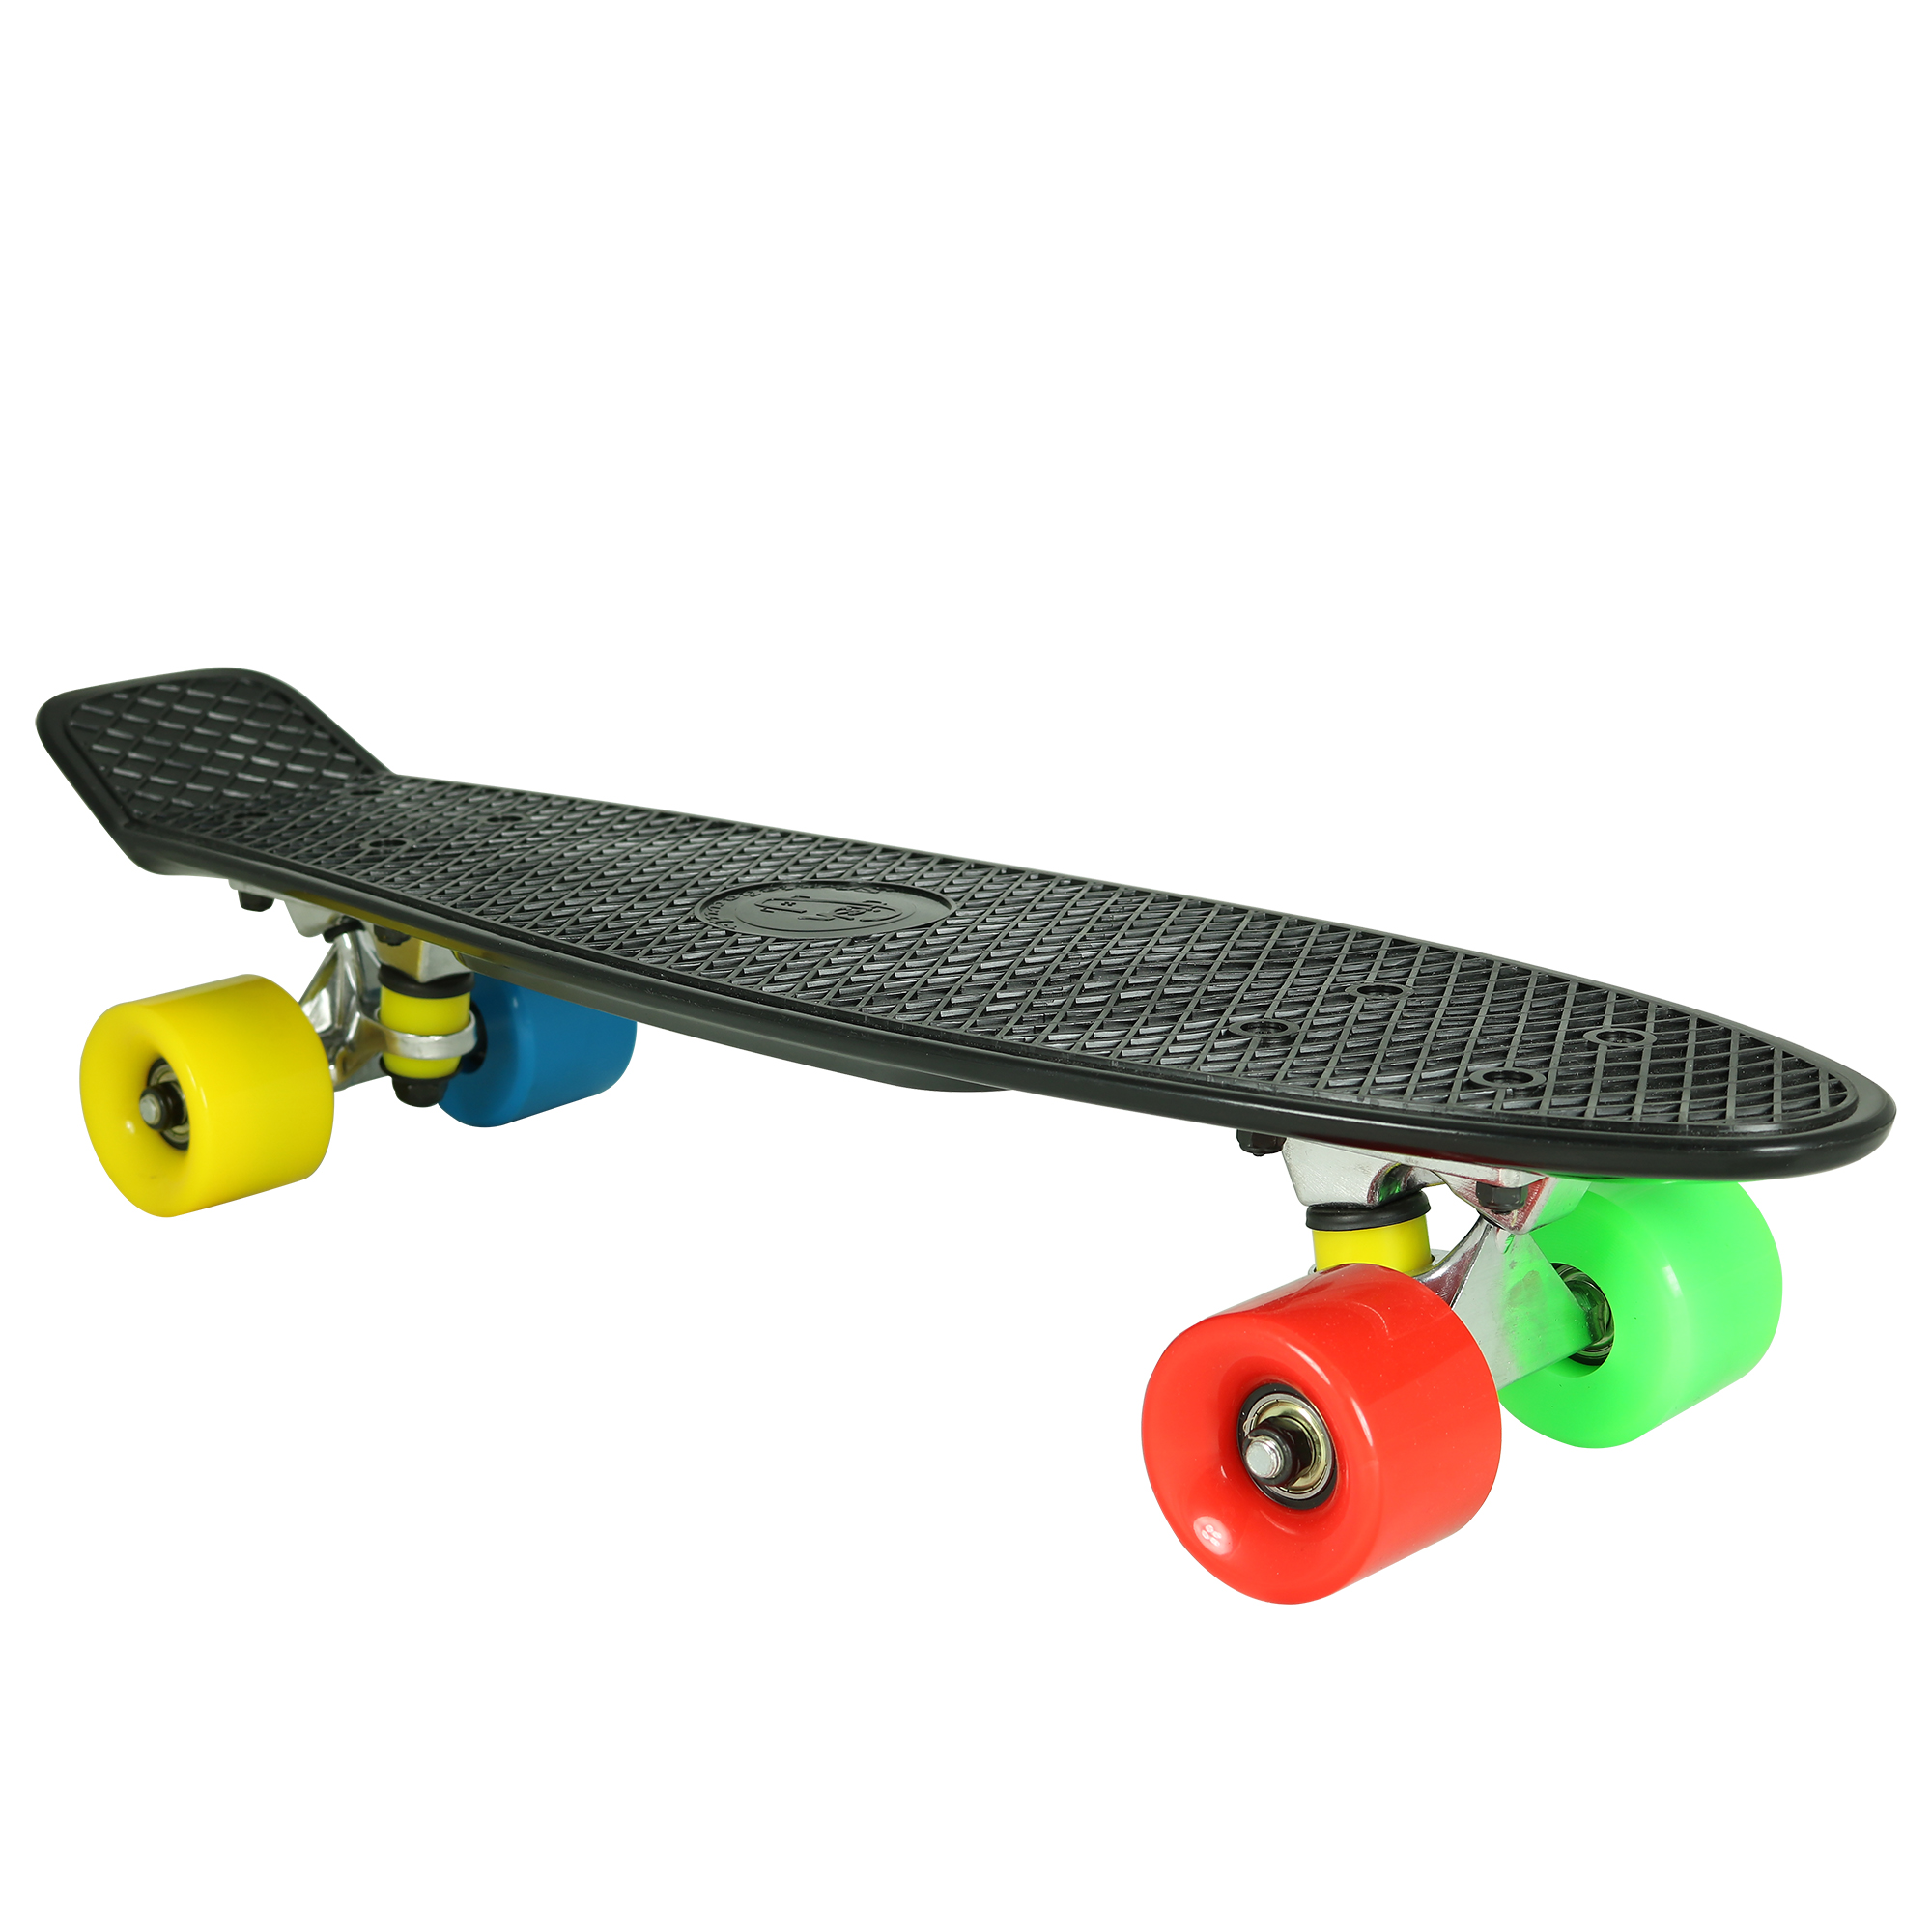 Street Rebel 22.5 in. Retro Penny-Style Skateboard, Glow-In-The-Dark Green by Street Rebel